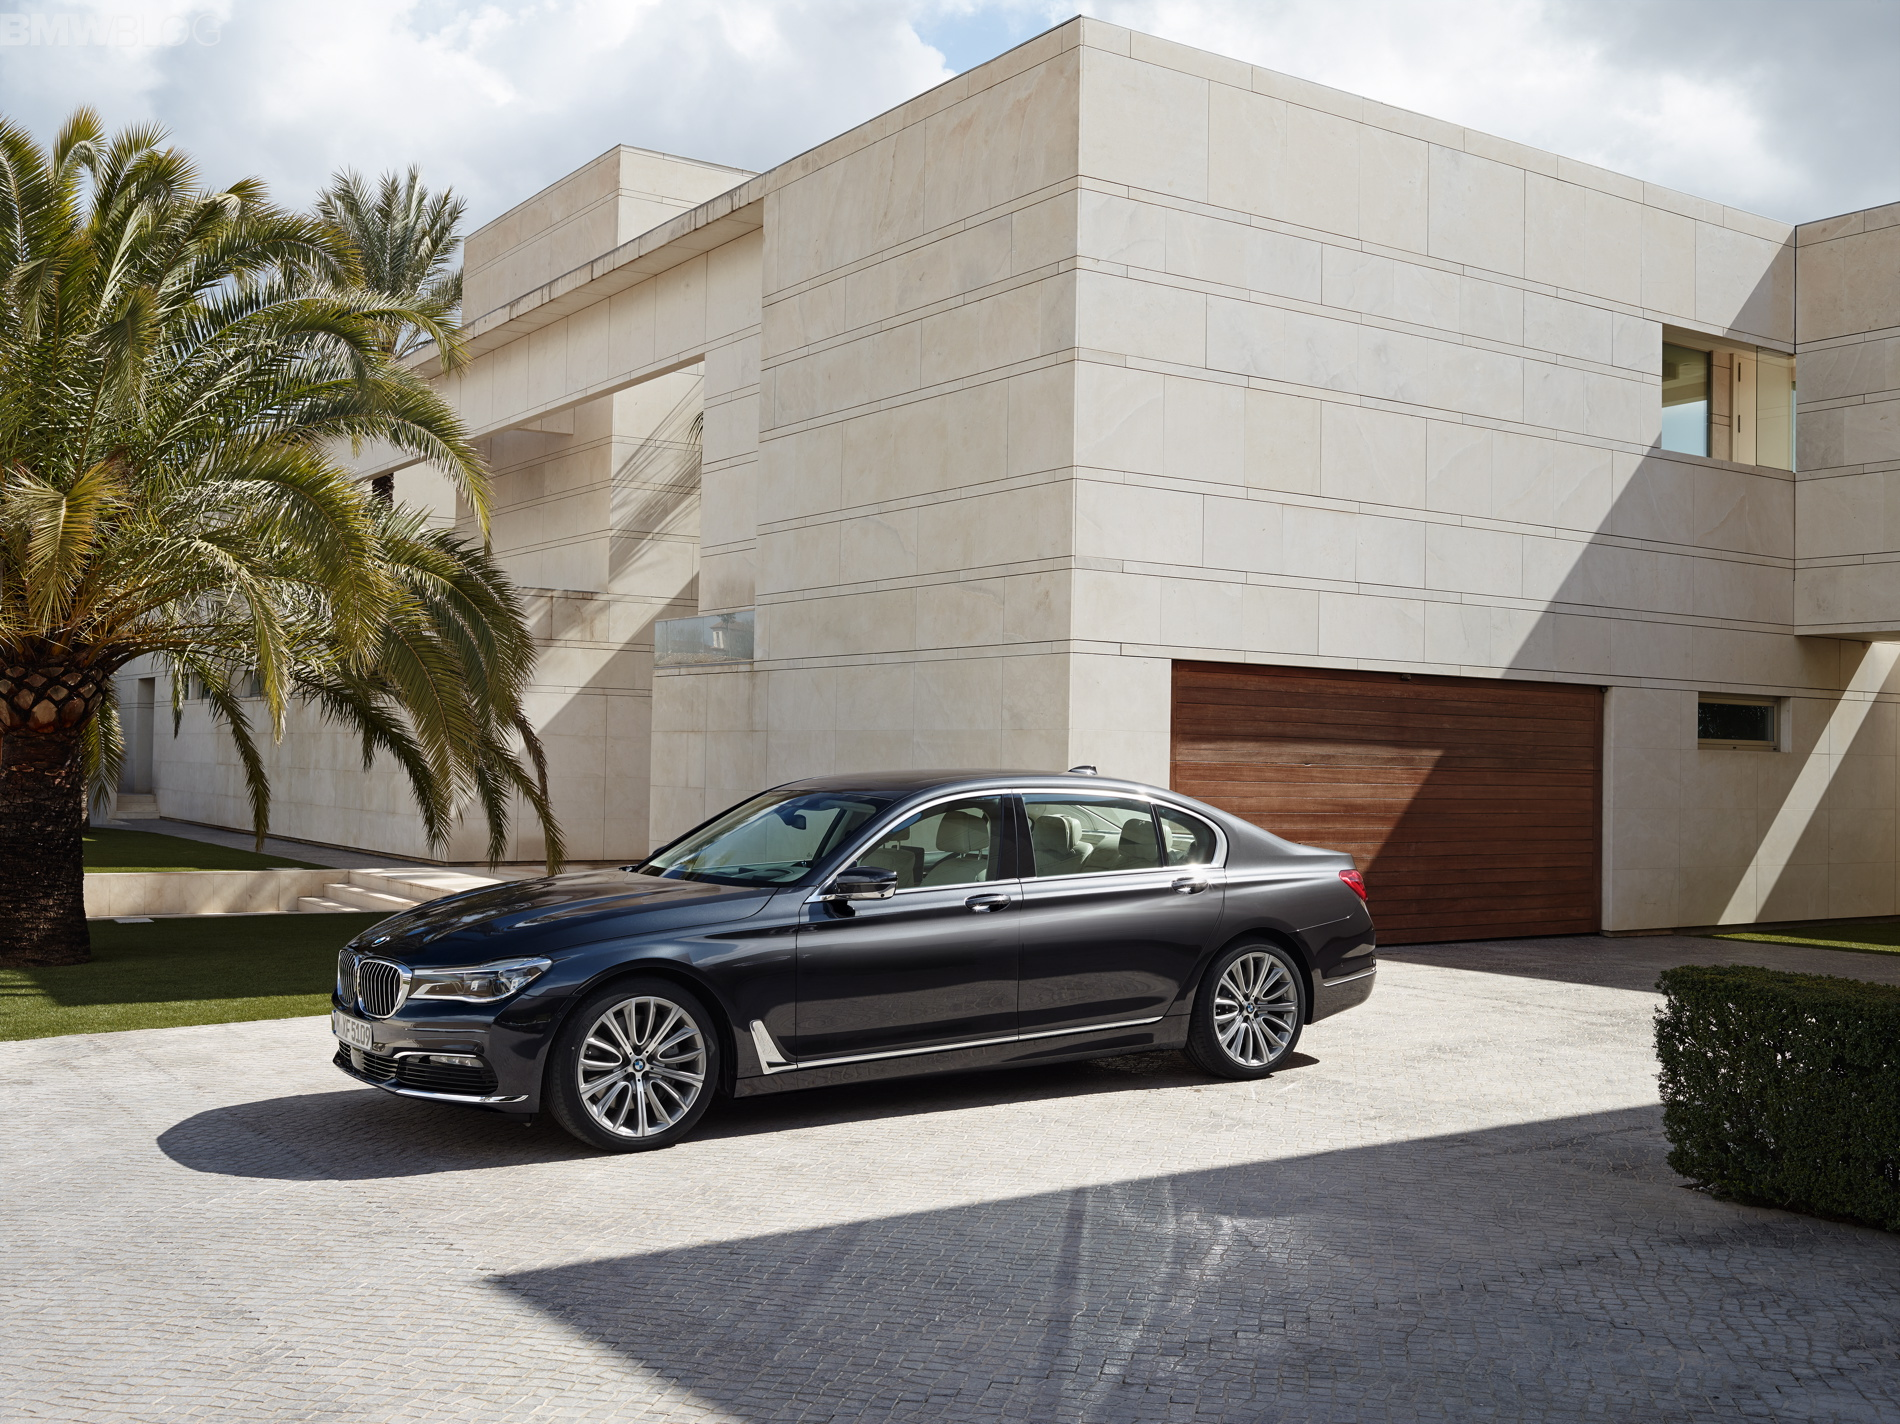 2016 bmw 7 series exterior images 1900x1200 24